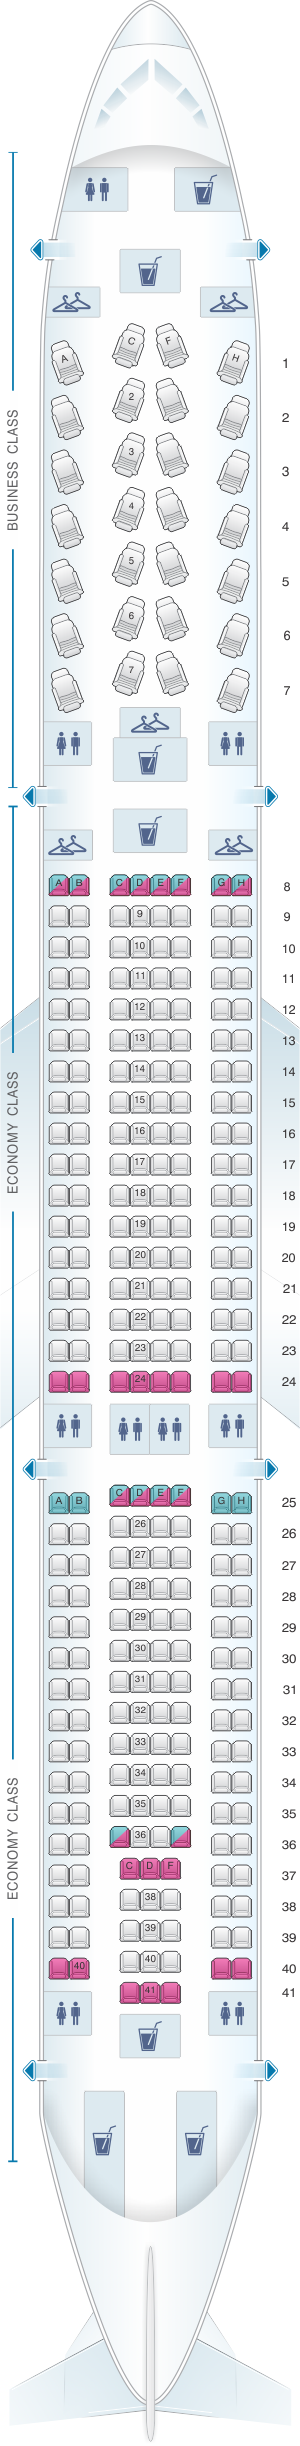 Seat map for US Airways Airbus A330 300